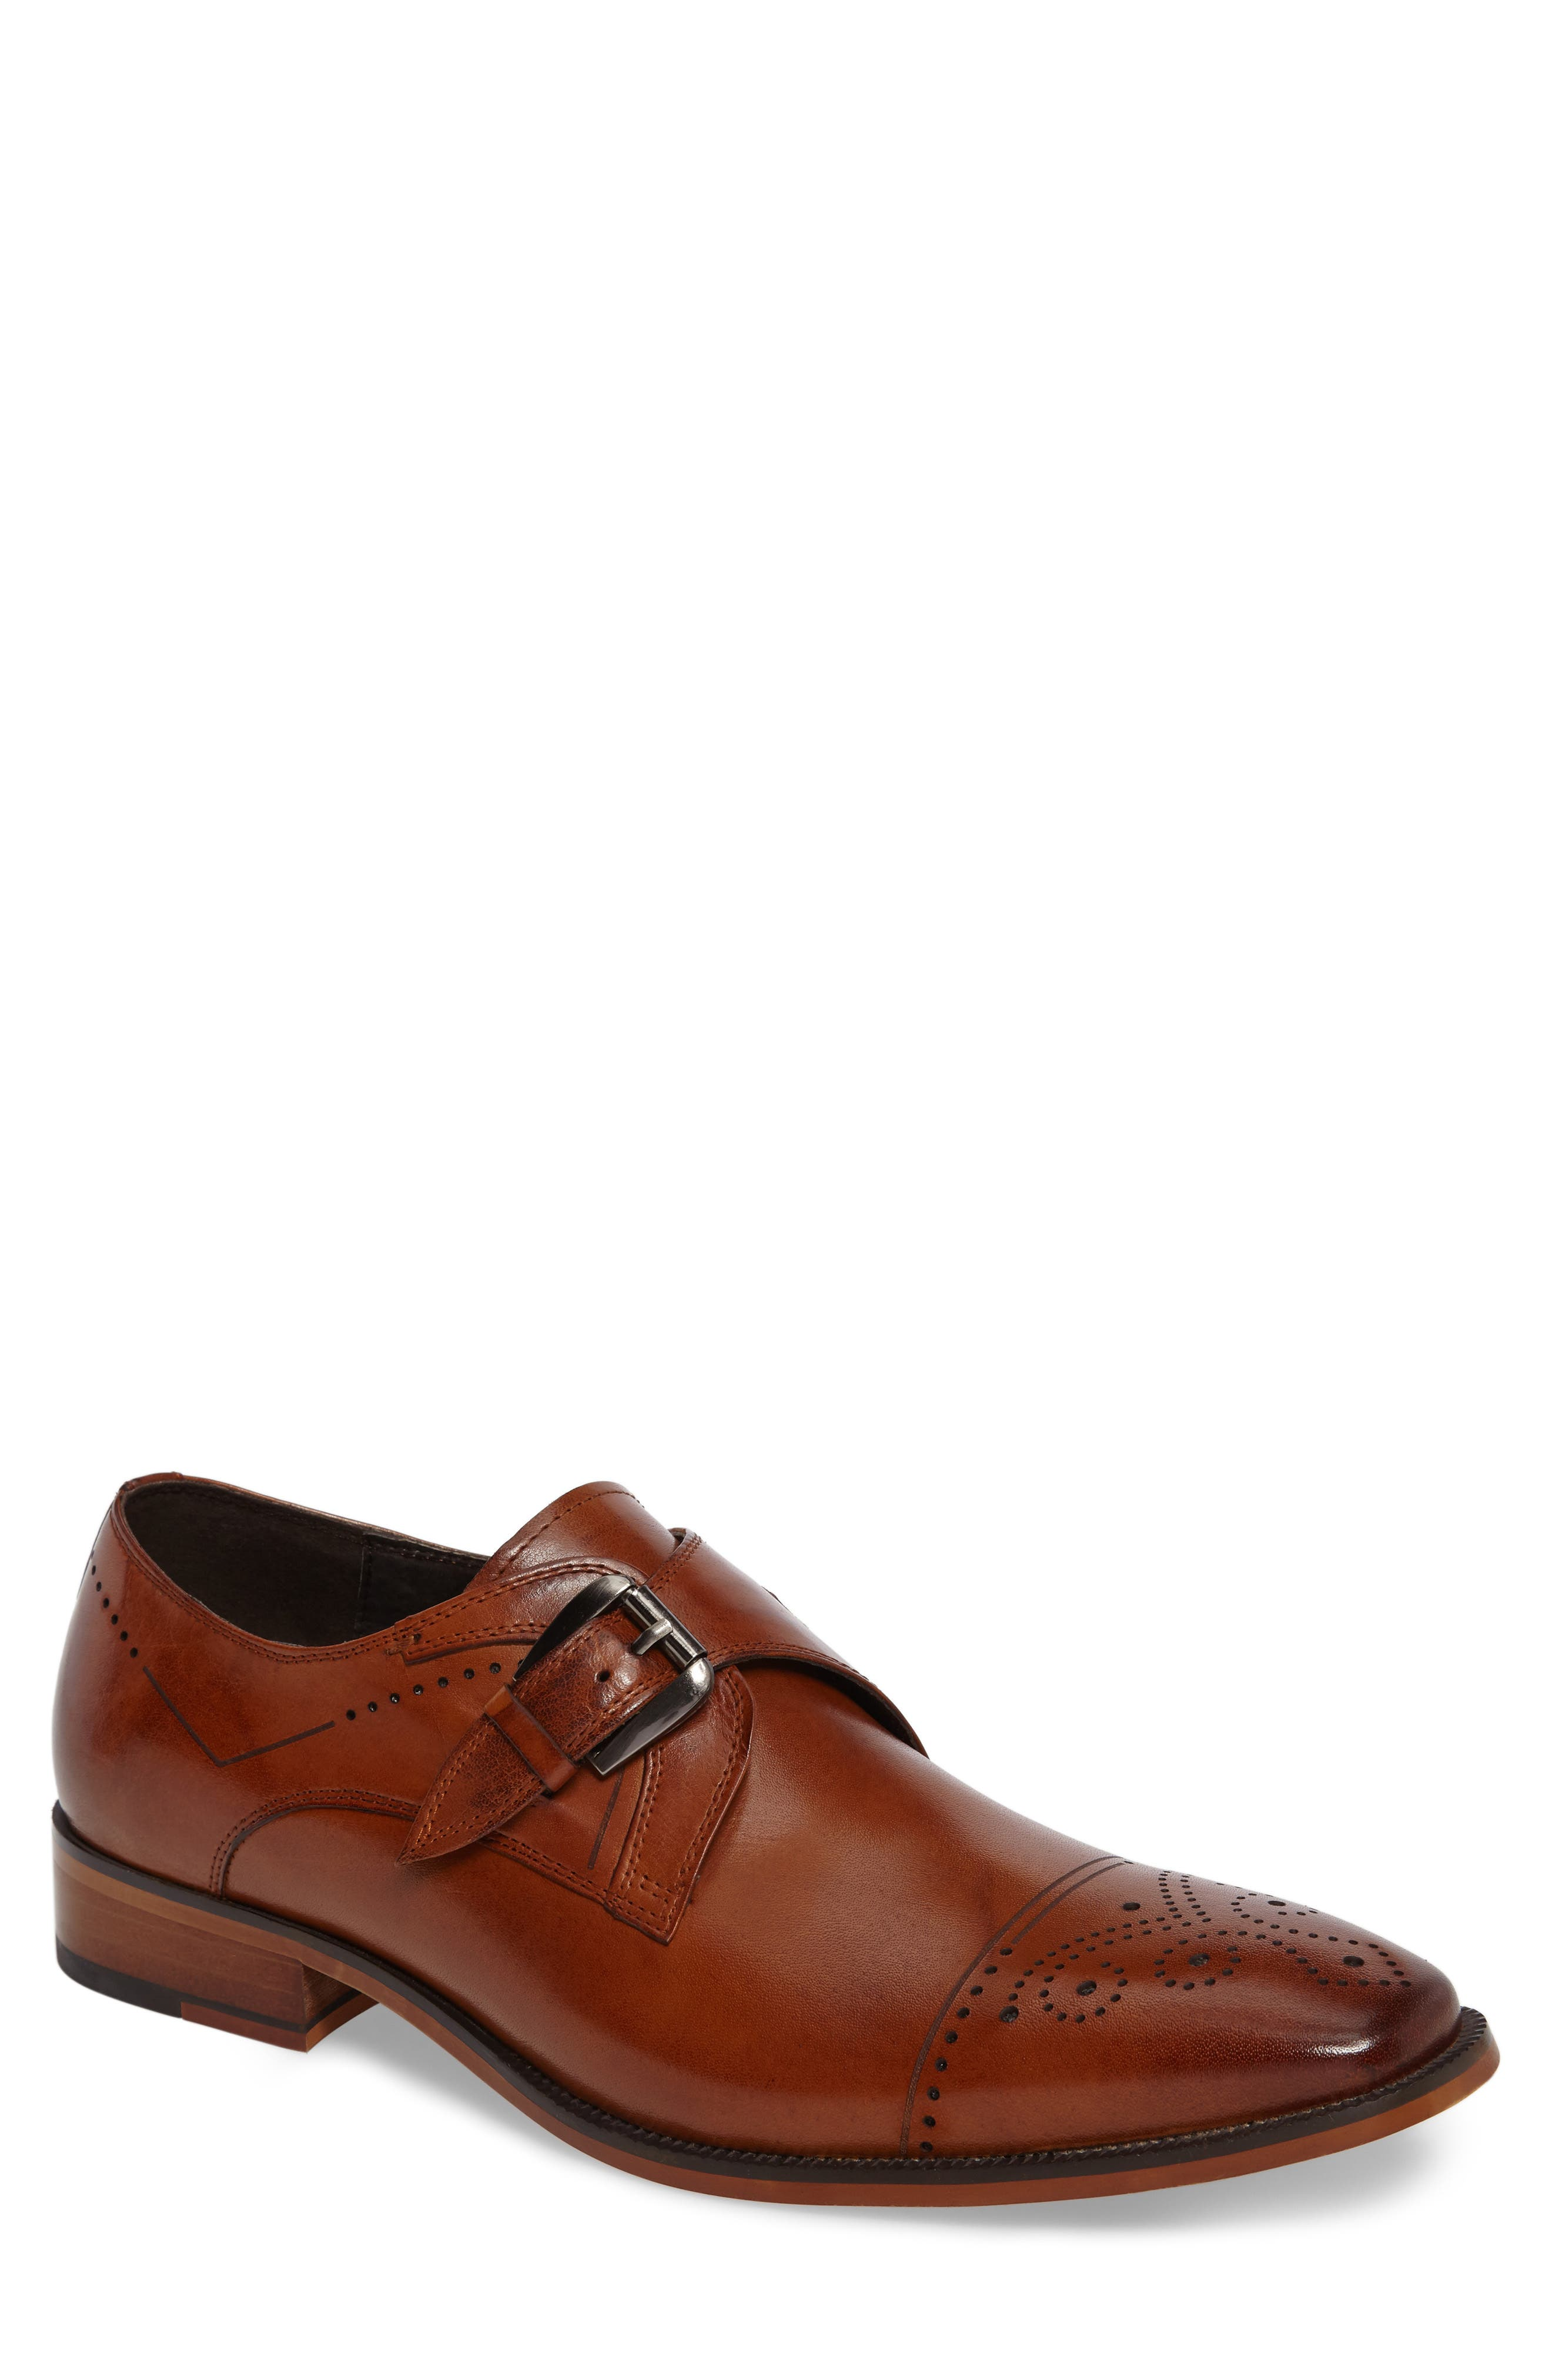 Kimball Monk Strap Shoe,                         Main,                         color, SADDLE TAN LEATHER